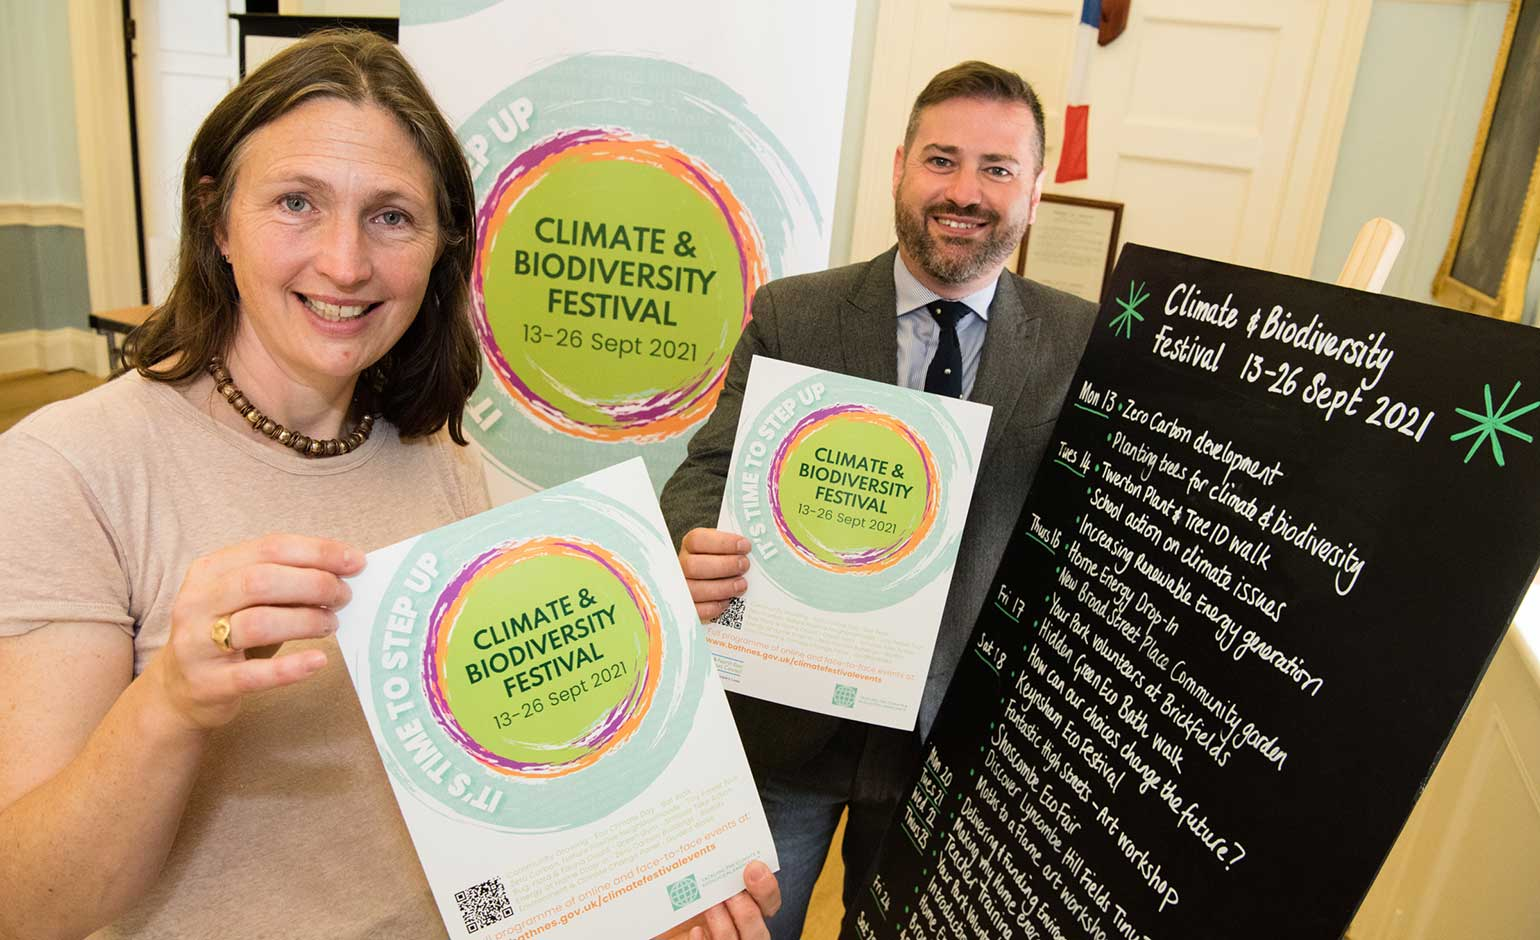 Opening of first Climate & Biodiversity Festival marked with gathering